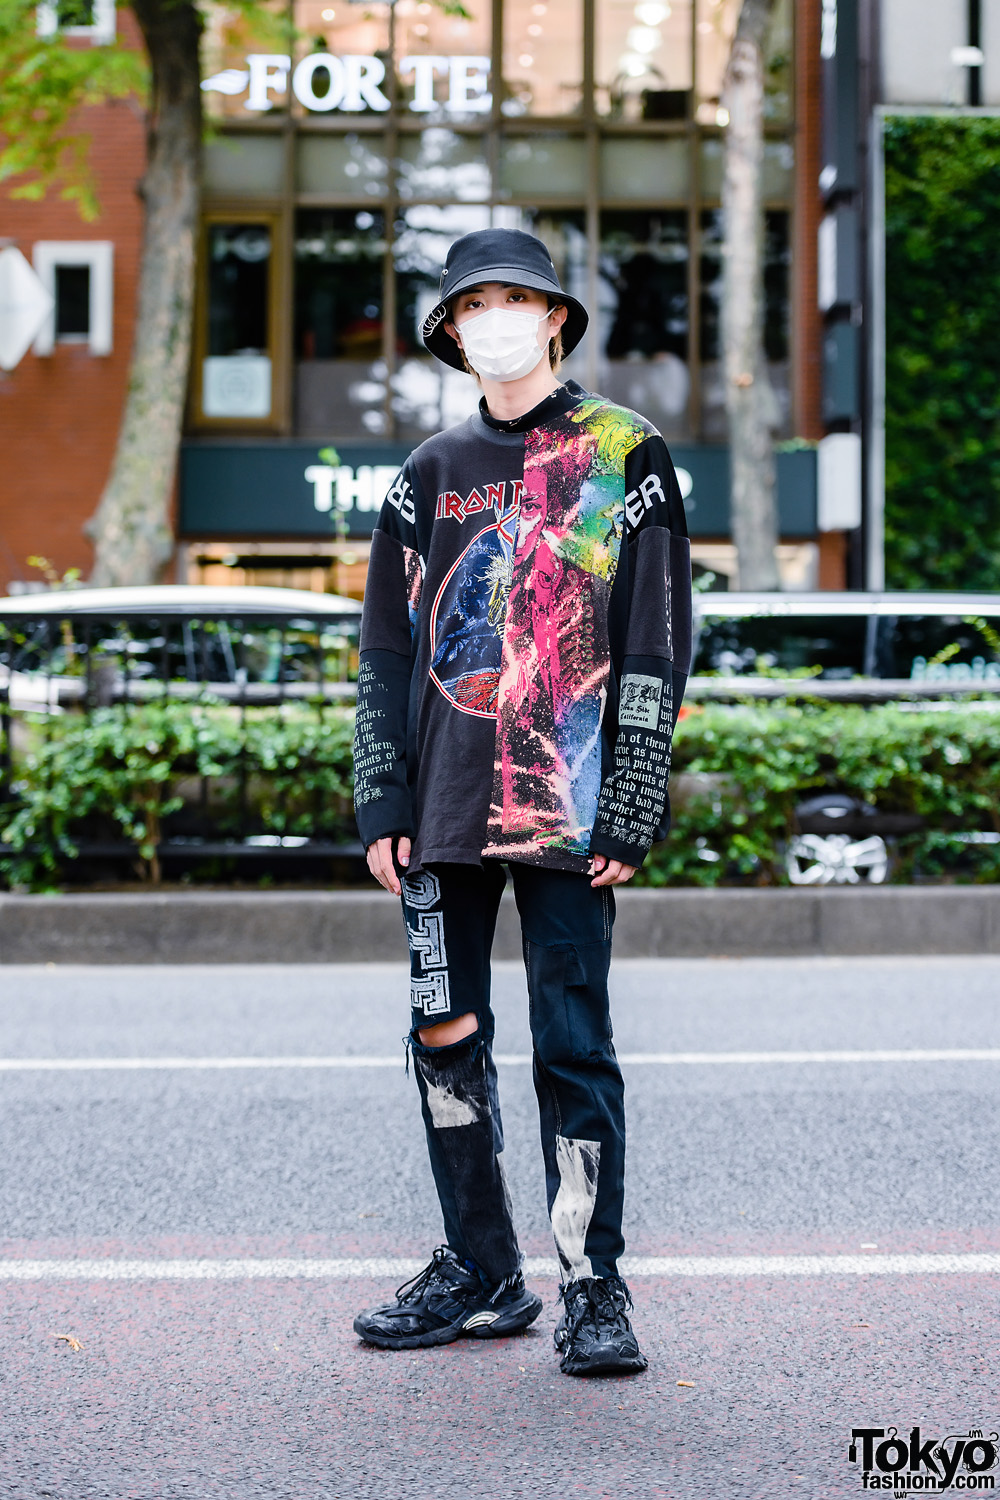 Cote Mer Graphic Streetwear Style w/ Bucket Hat, Face Mask, Patchwork Sweatshirt, Ripped Pants & Balenciaga Chunky Sneakers